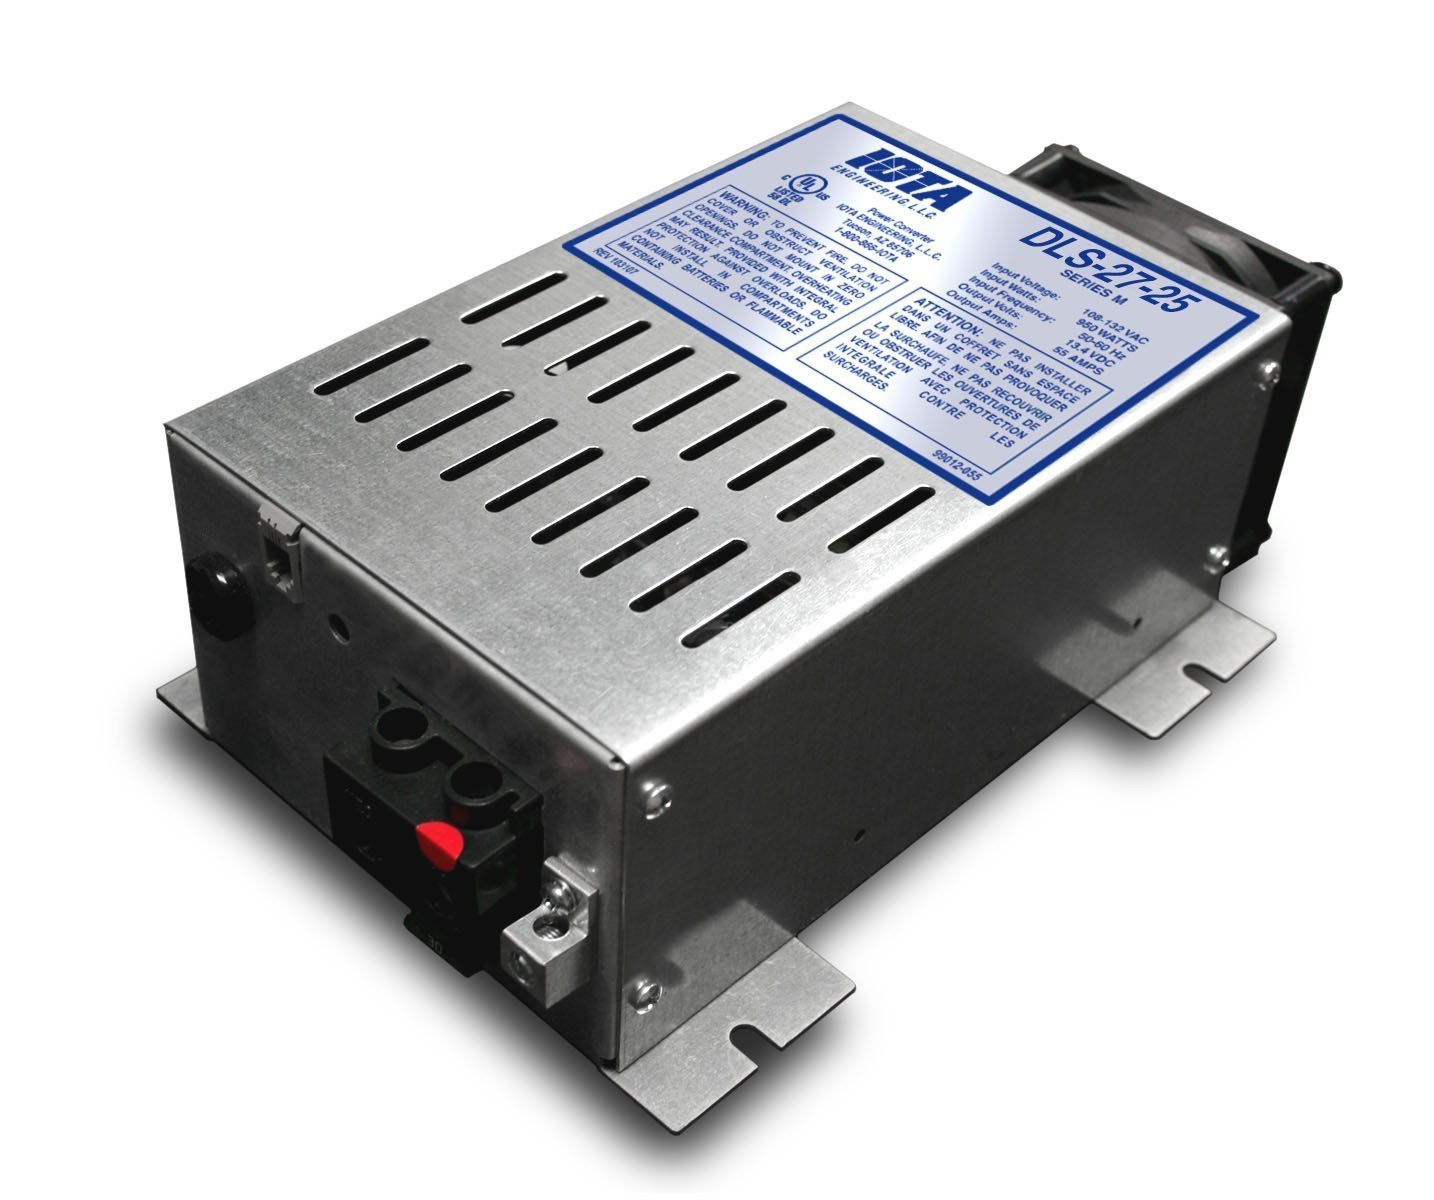 IOTA DLS-27-25 24 VOLT 25 AMP AUTOMATIC BATTERY CHARGER POWER SUPPLY